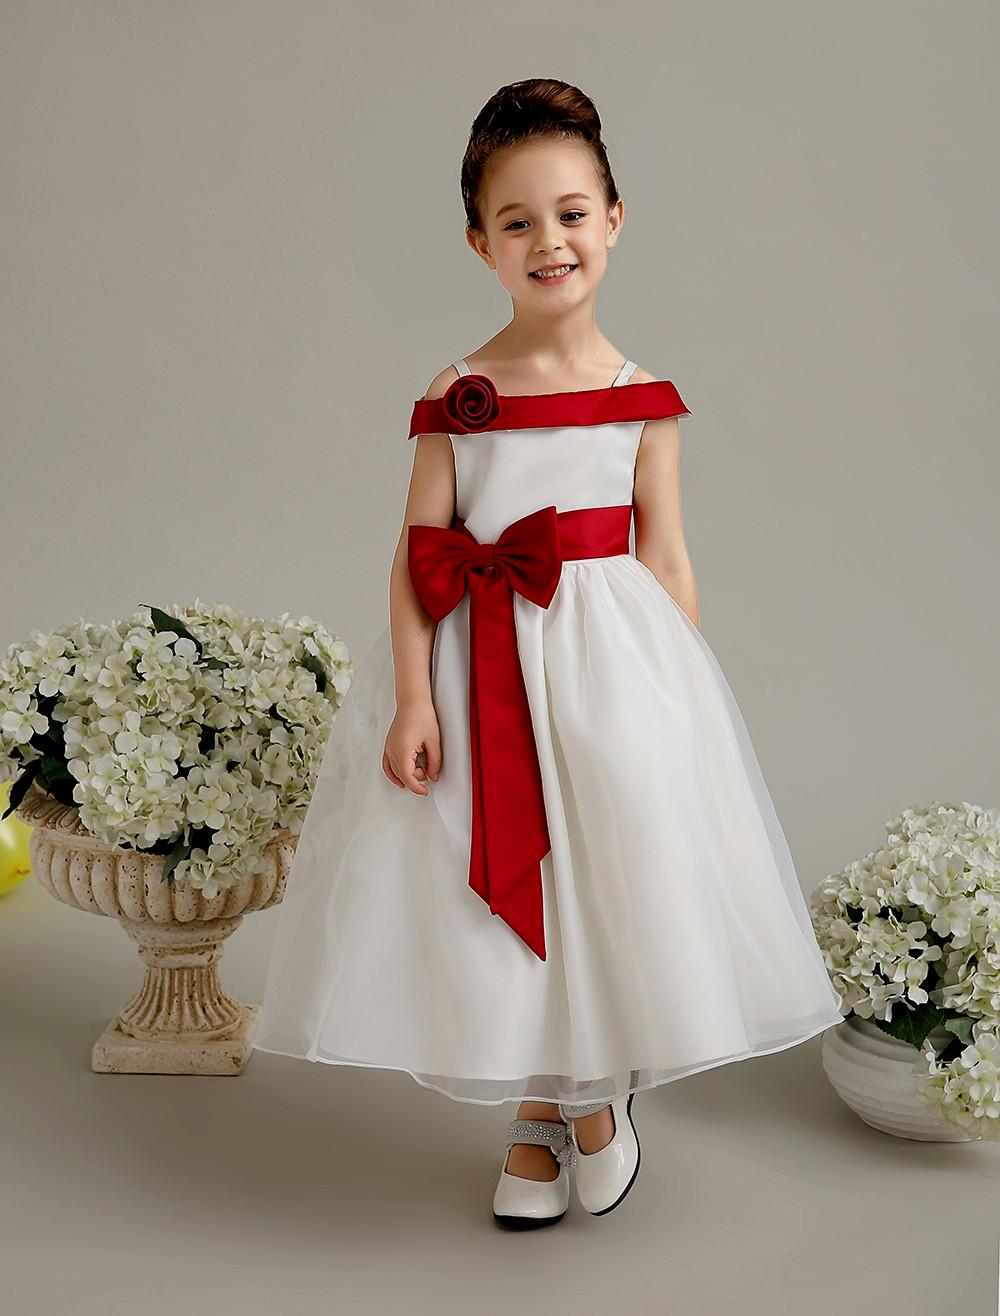 elegant dresses for little girls photo - 1